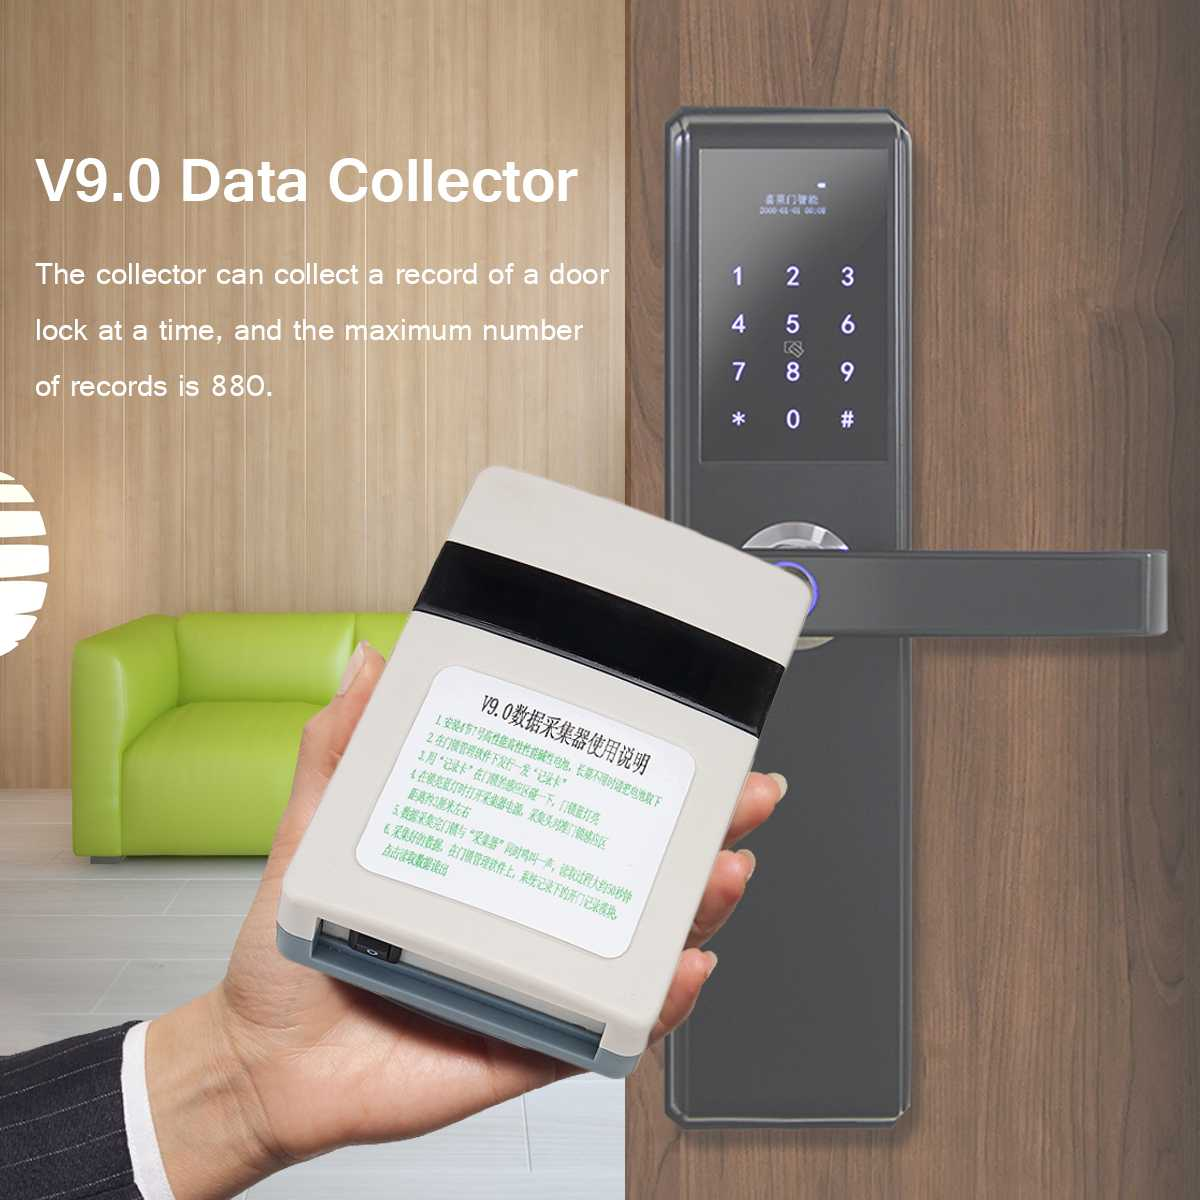 For T5557 Smart Card V9.0 Data Collector Hotel Card Lock Managment System Reader Intelligent Setting Record USB IdentificationFor T5557 Smart Card V9.0 Data Collector Hotel Card Lock Managment System Reader Intelligent Setting Record USB Identification